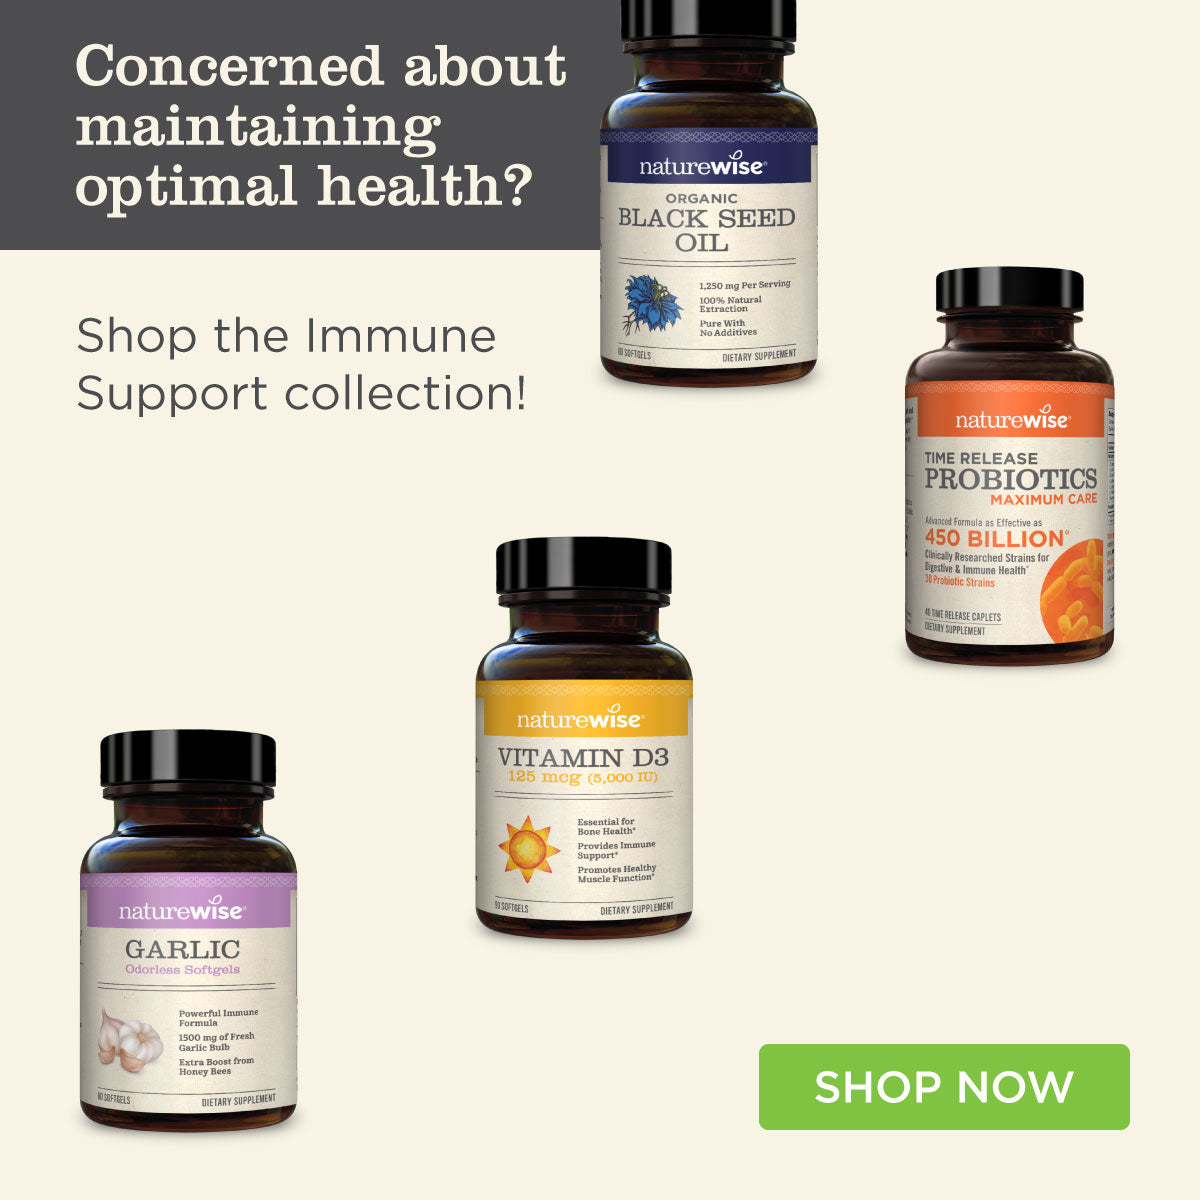 Save 20% on the Immune Support collection